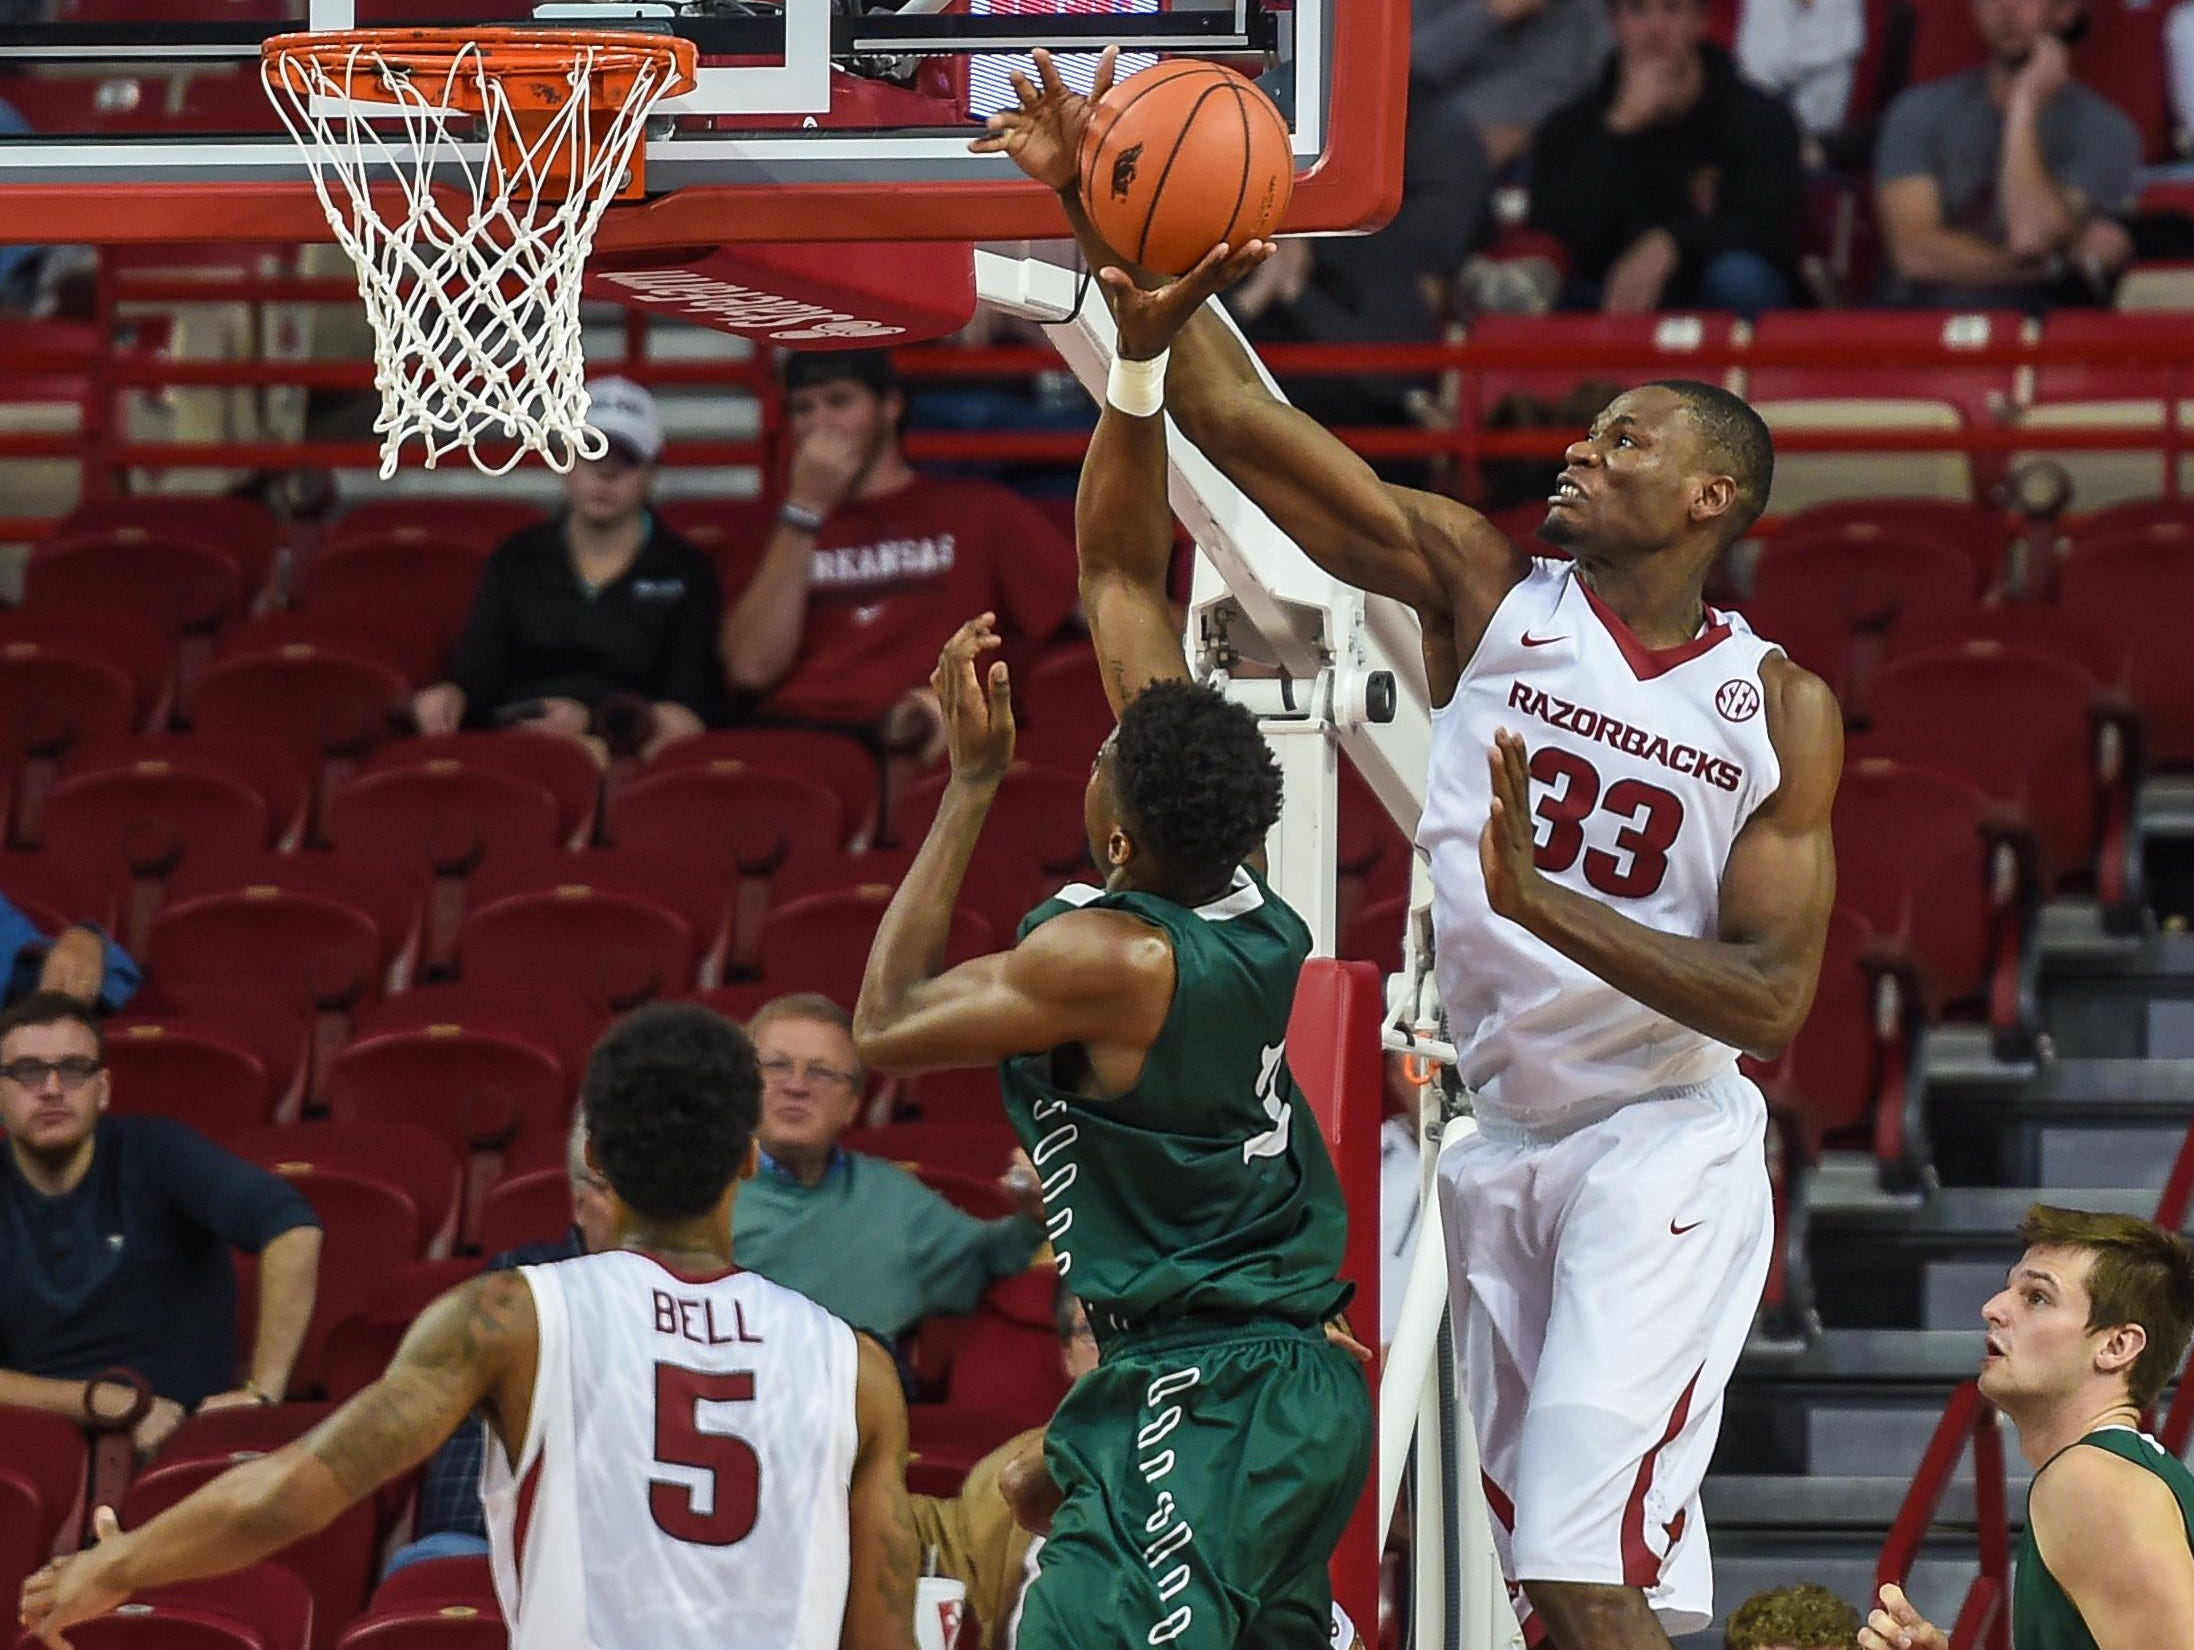 Arkansas' Moses Kingsley (33) makes a block against Delta State on Tuesday night in Fayetteville.